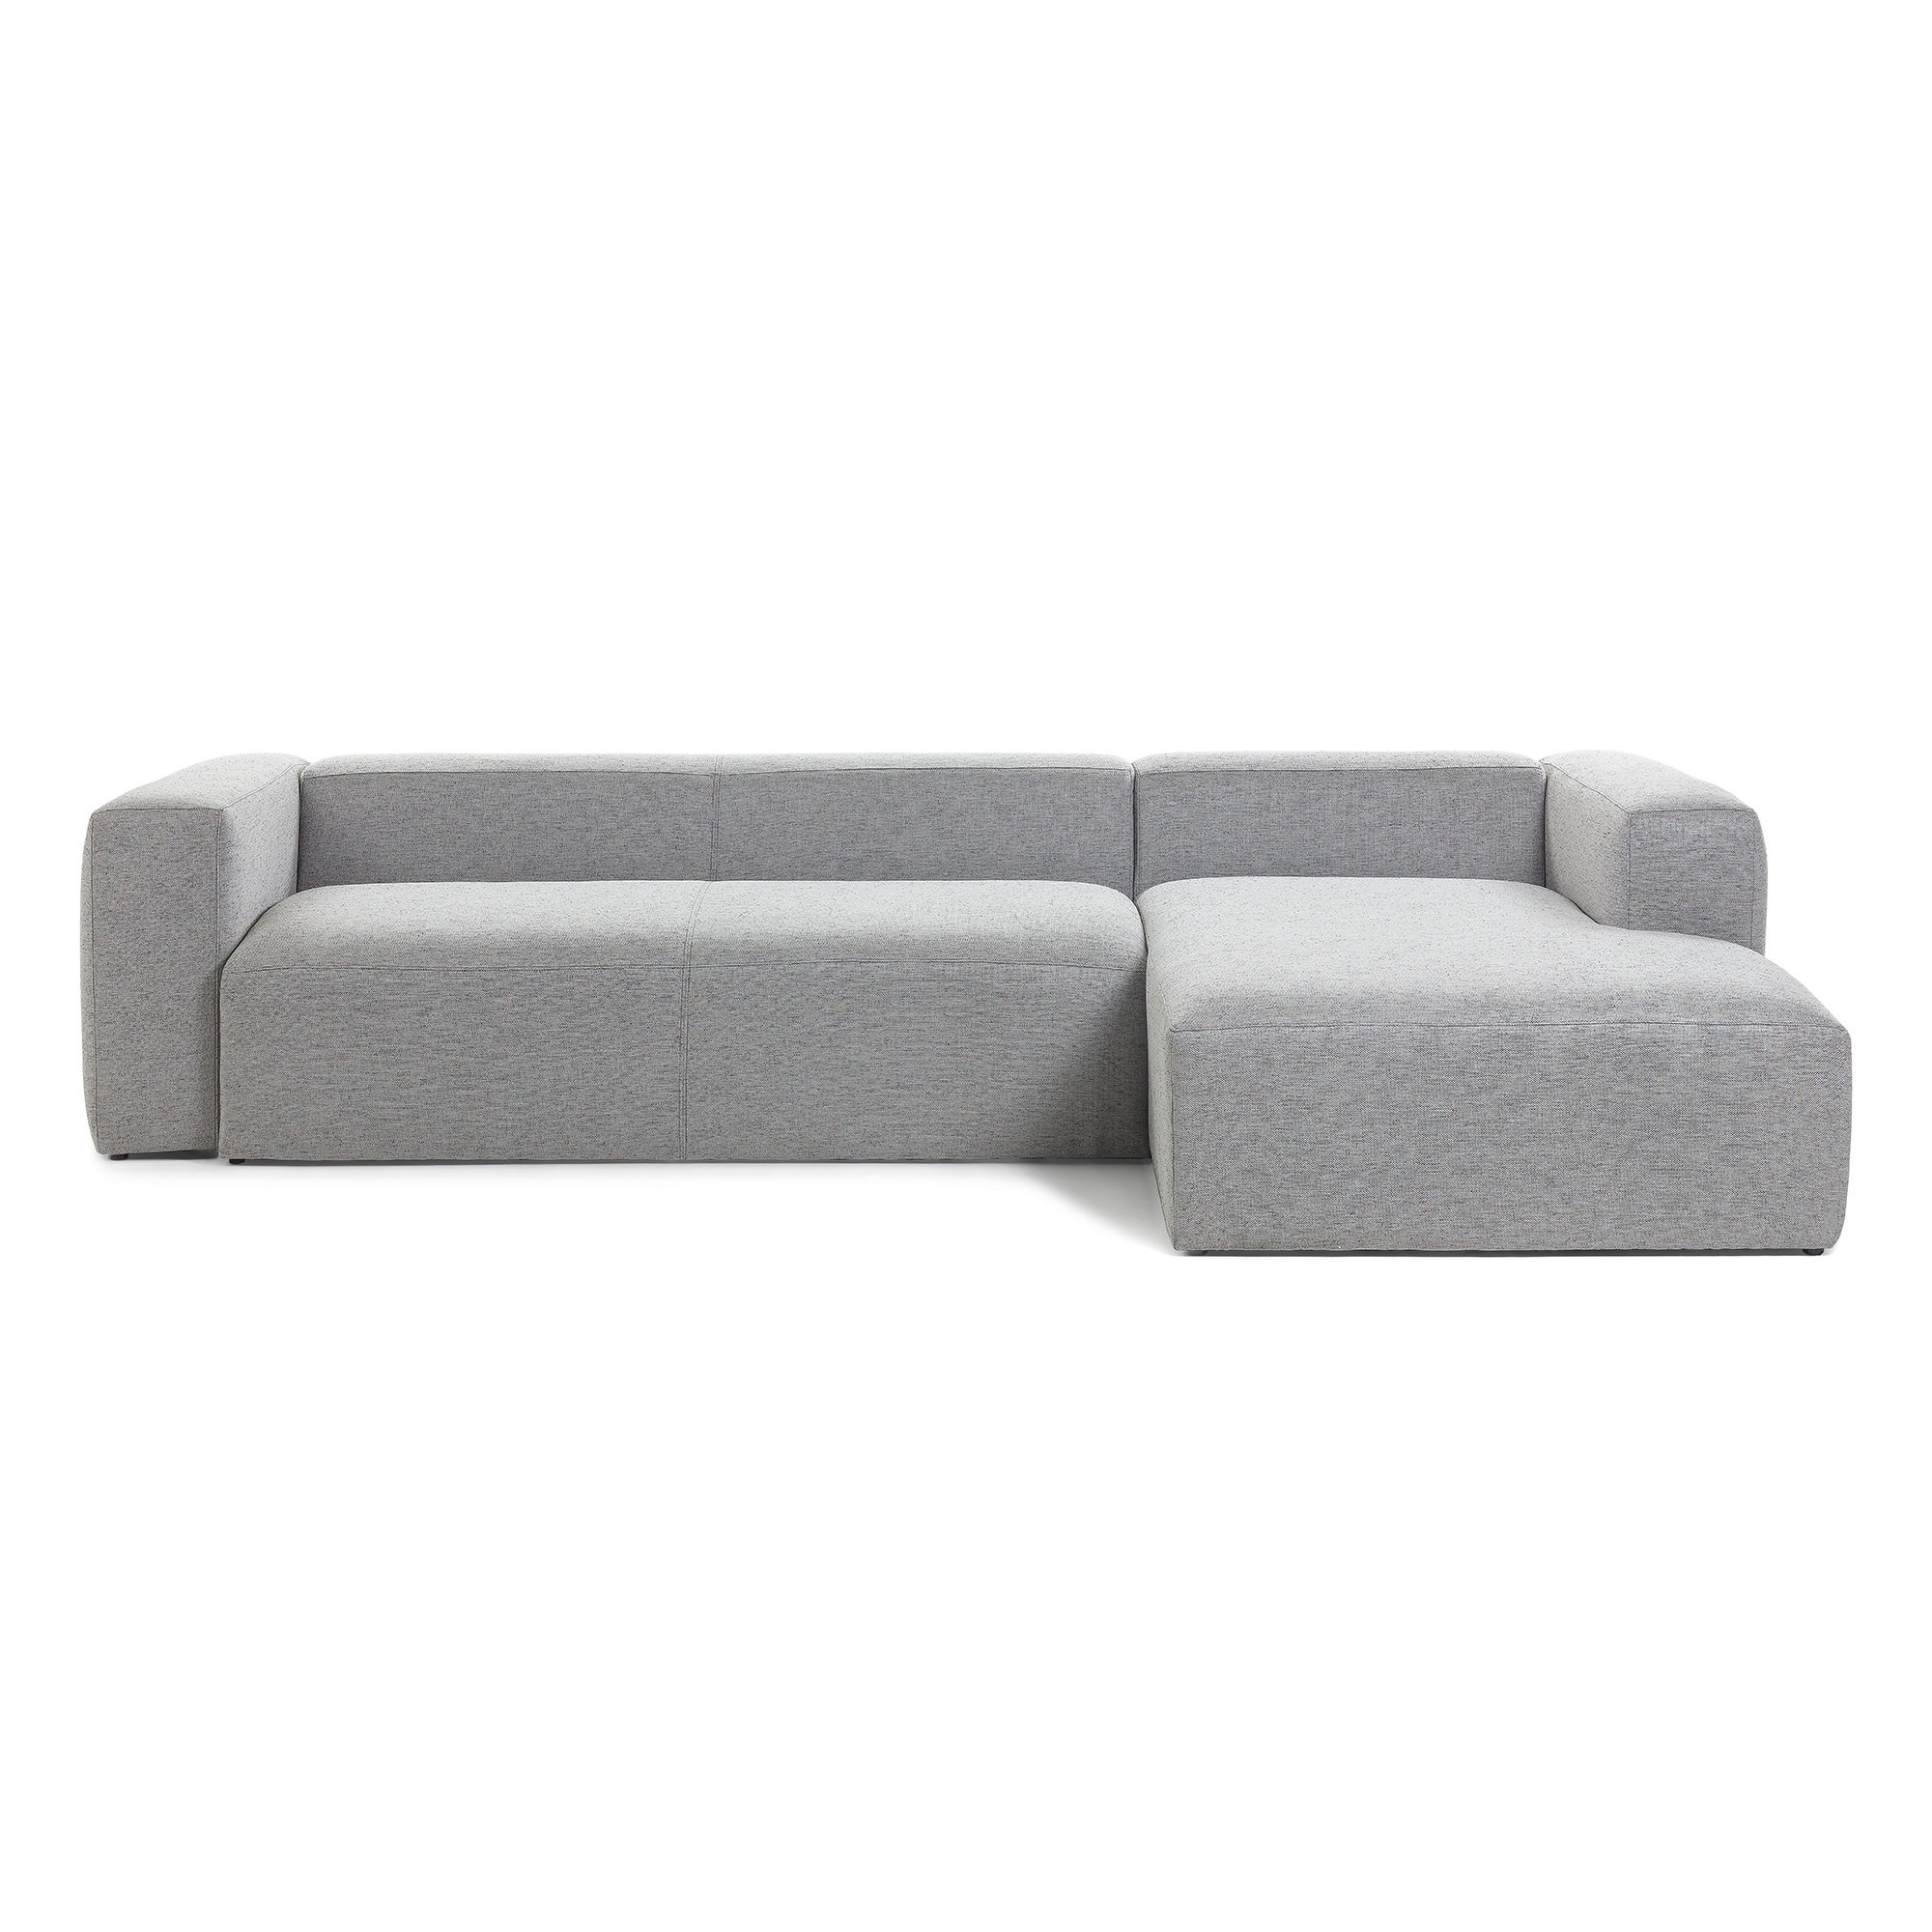 Lorton Fabric Corner Sofa, 2 Seater with RHF Chaise, Light Grey